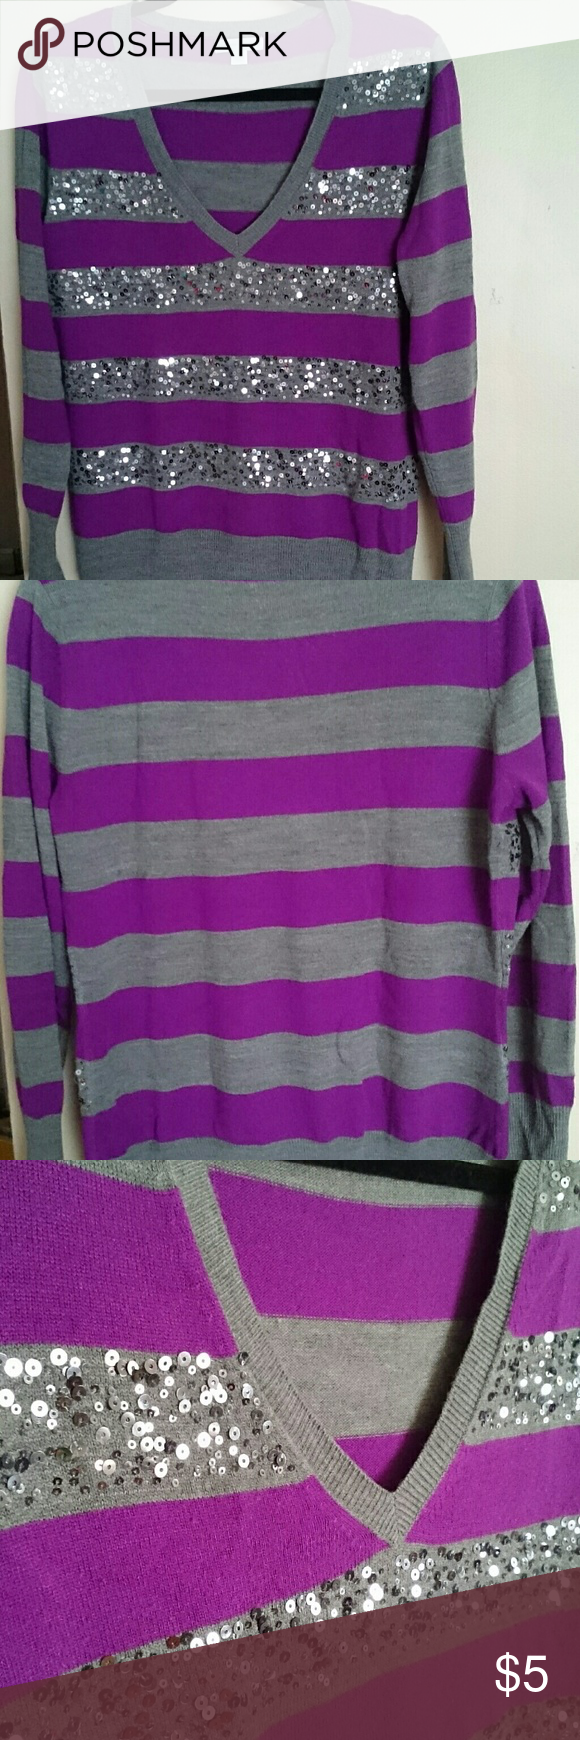 NYC L v-neck sweater Purple & Gray Horizontal stripe sweater with sequins on front New York & Company size L GUC with some piling Pet & Smoke free home New York & Company Sweaters V-Necks